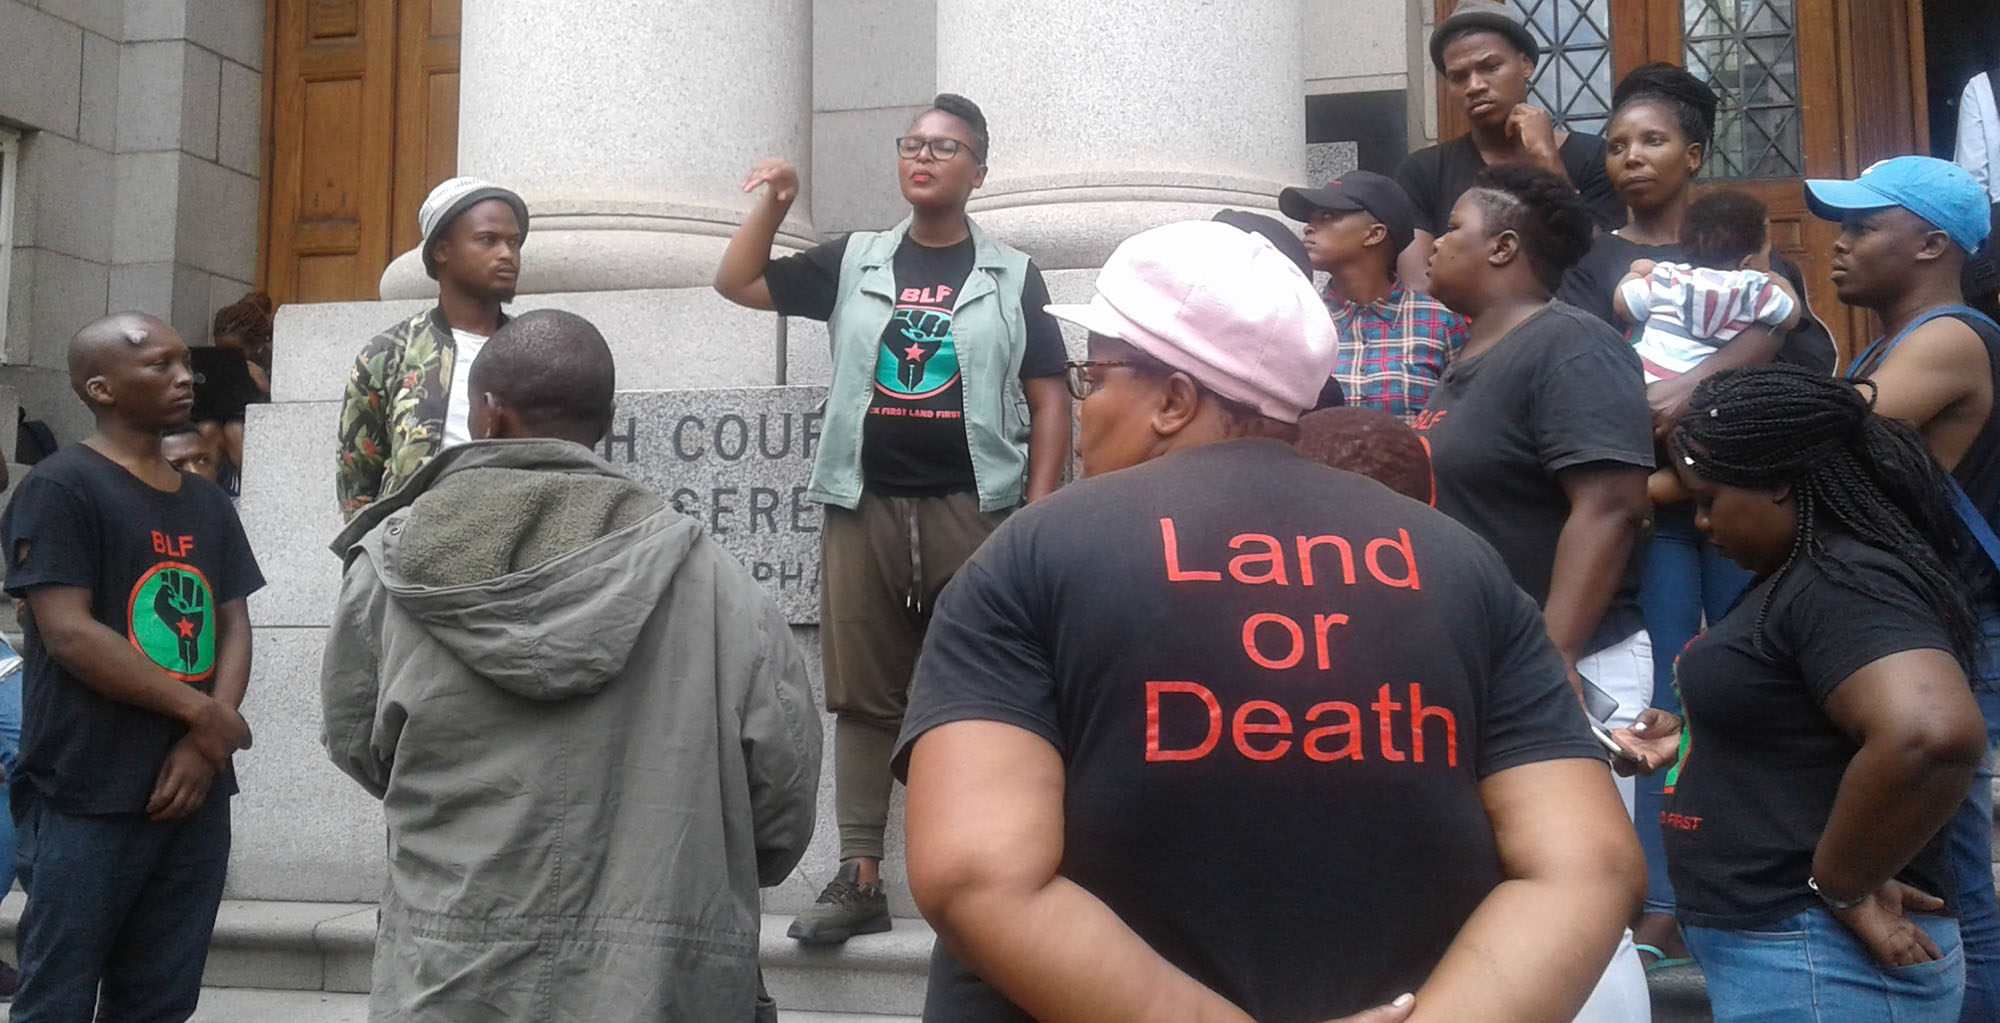 Wine farmers apply for an interdict against Black Land First over land occupation